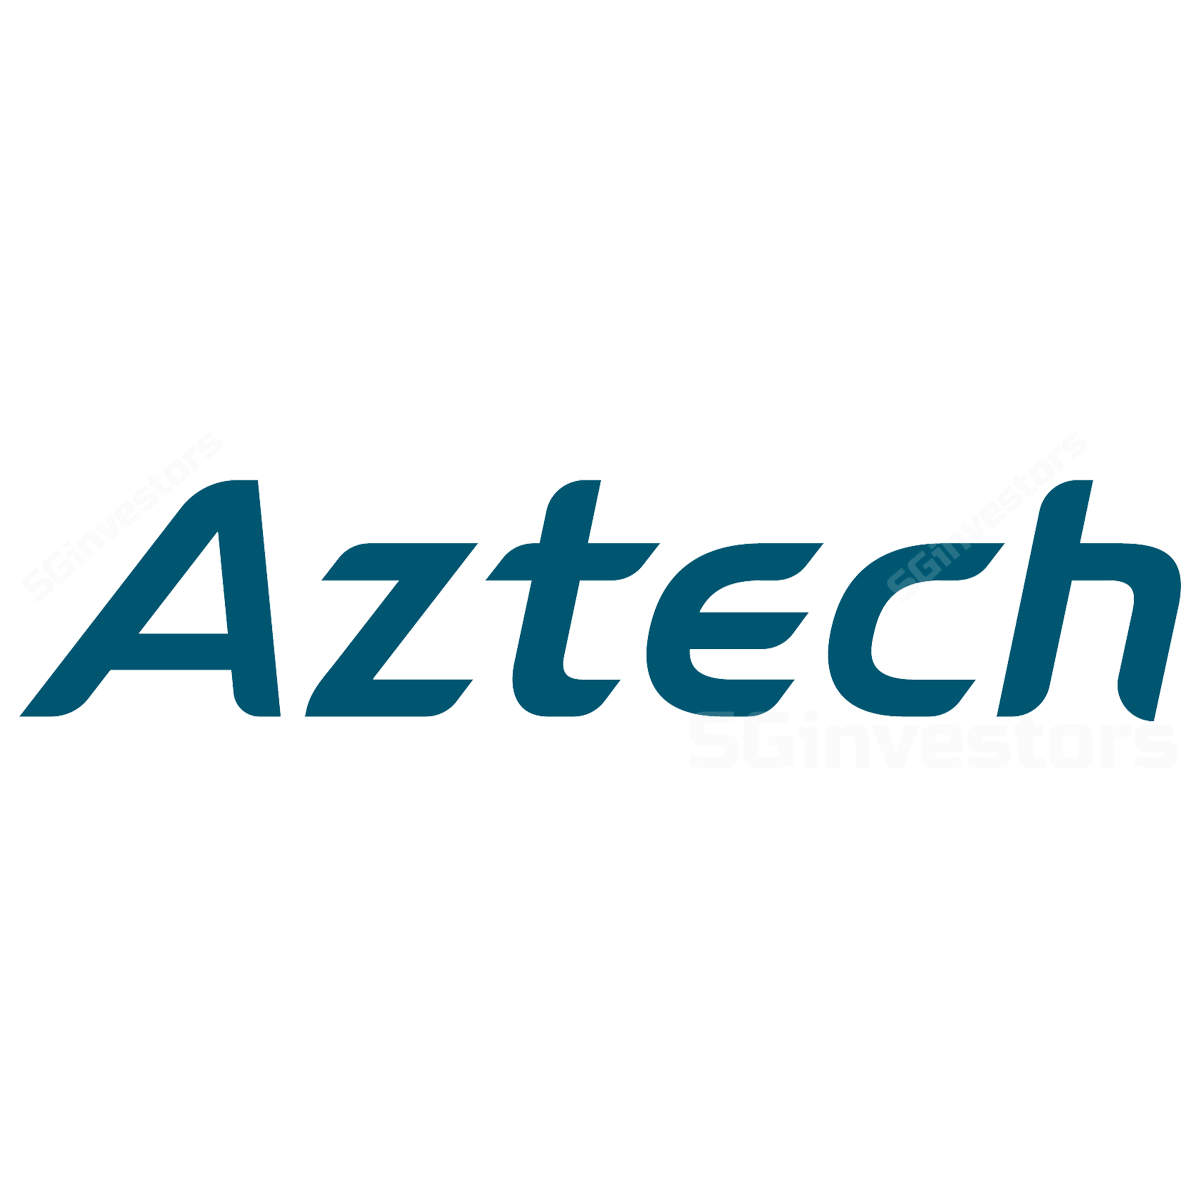 AZTECH GLOBAL LTD. (SGX:8AZ) | SGinvestors.io